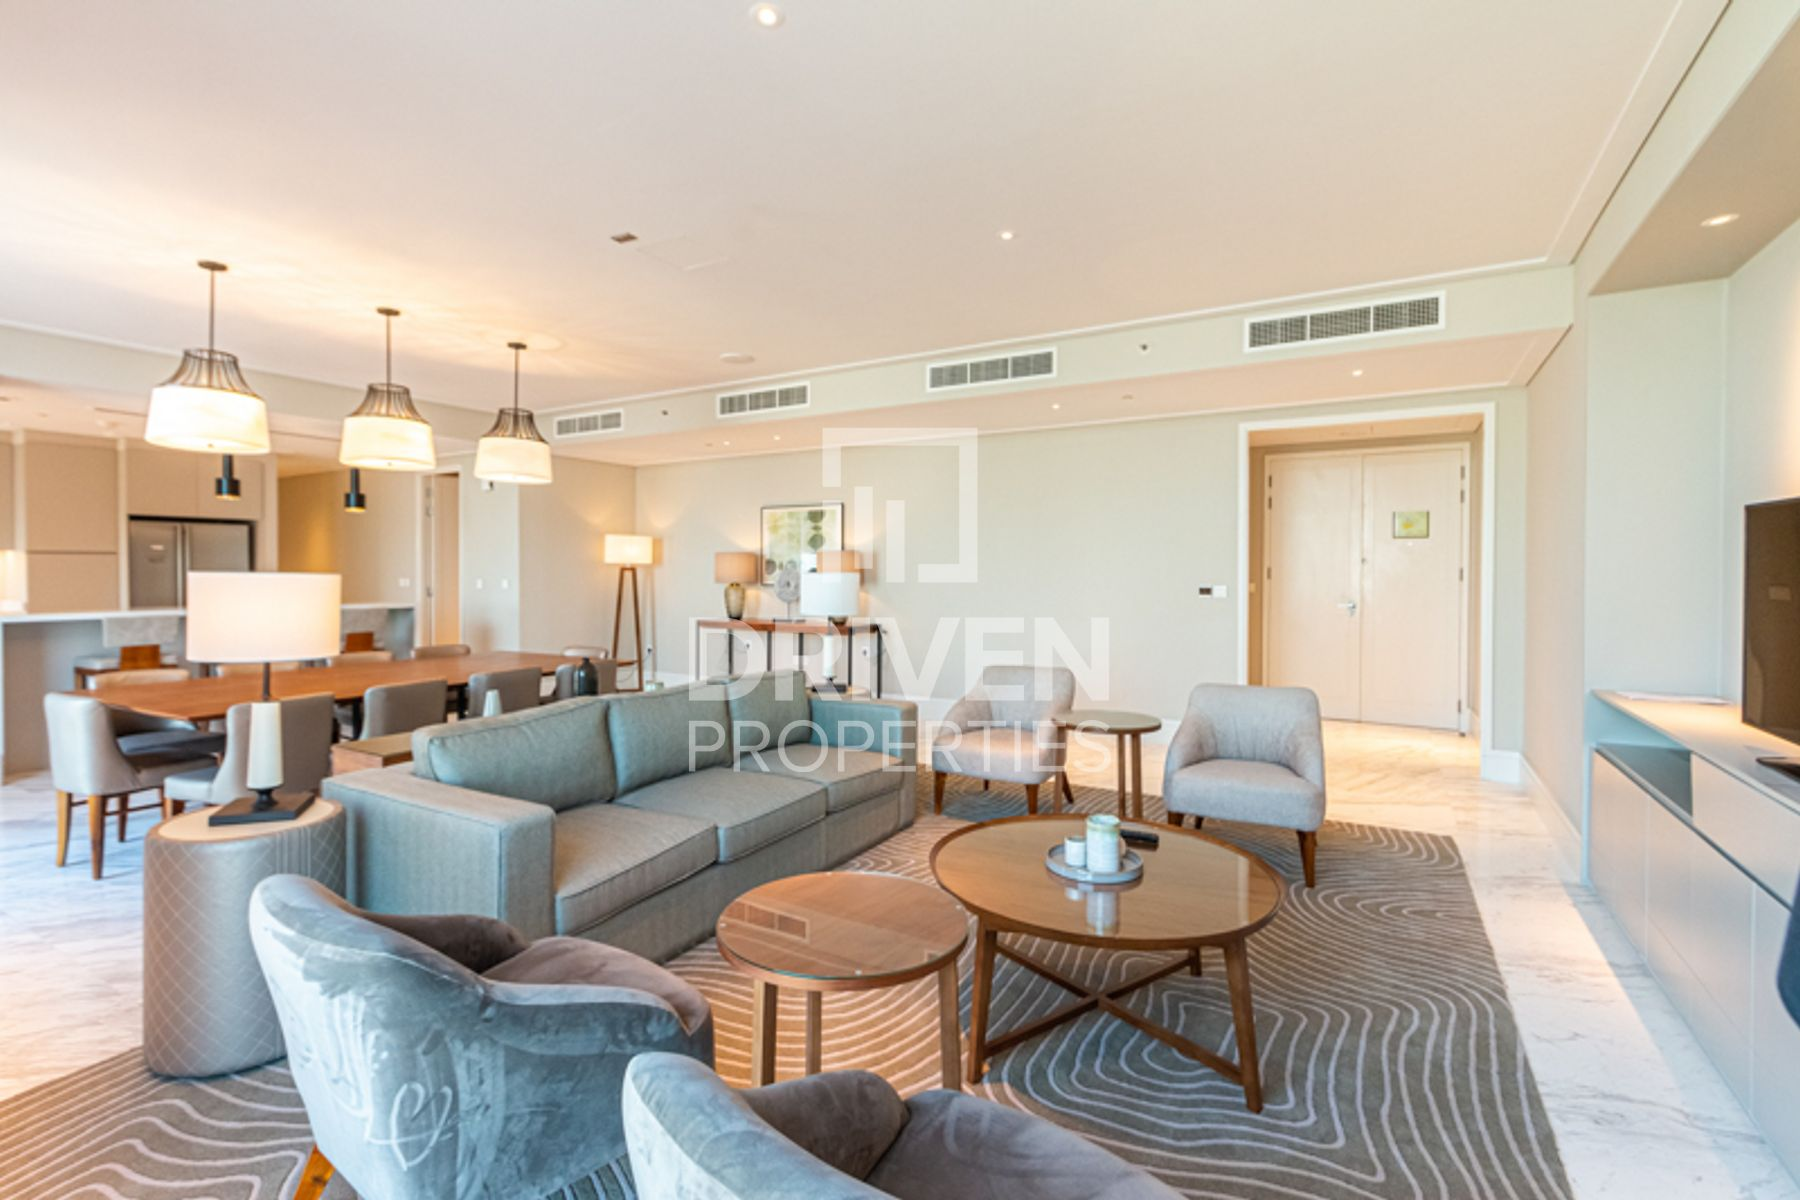 Exclusive and Furnished, Impressive View